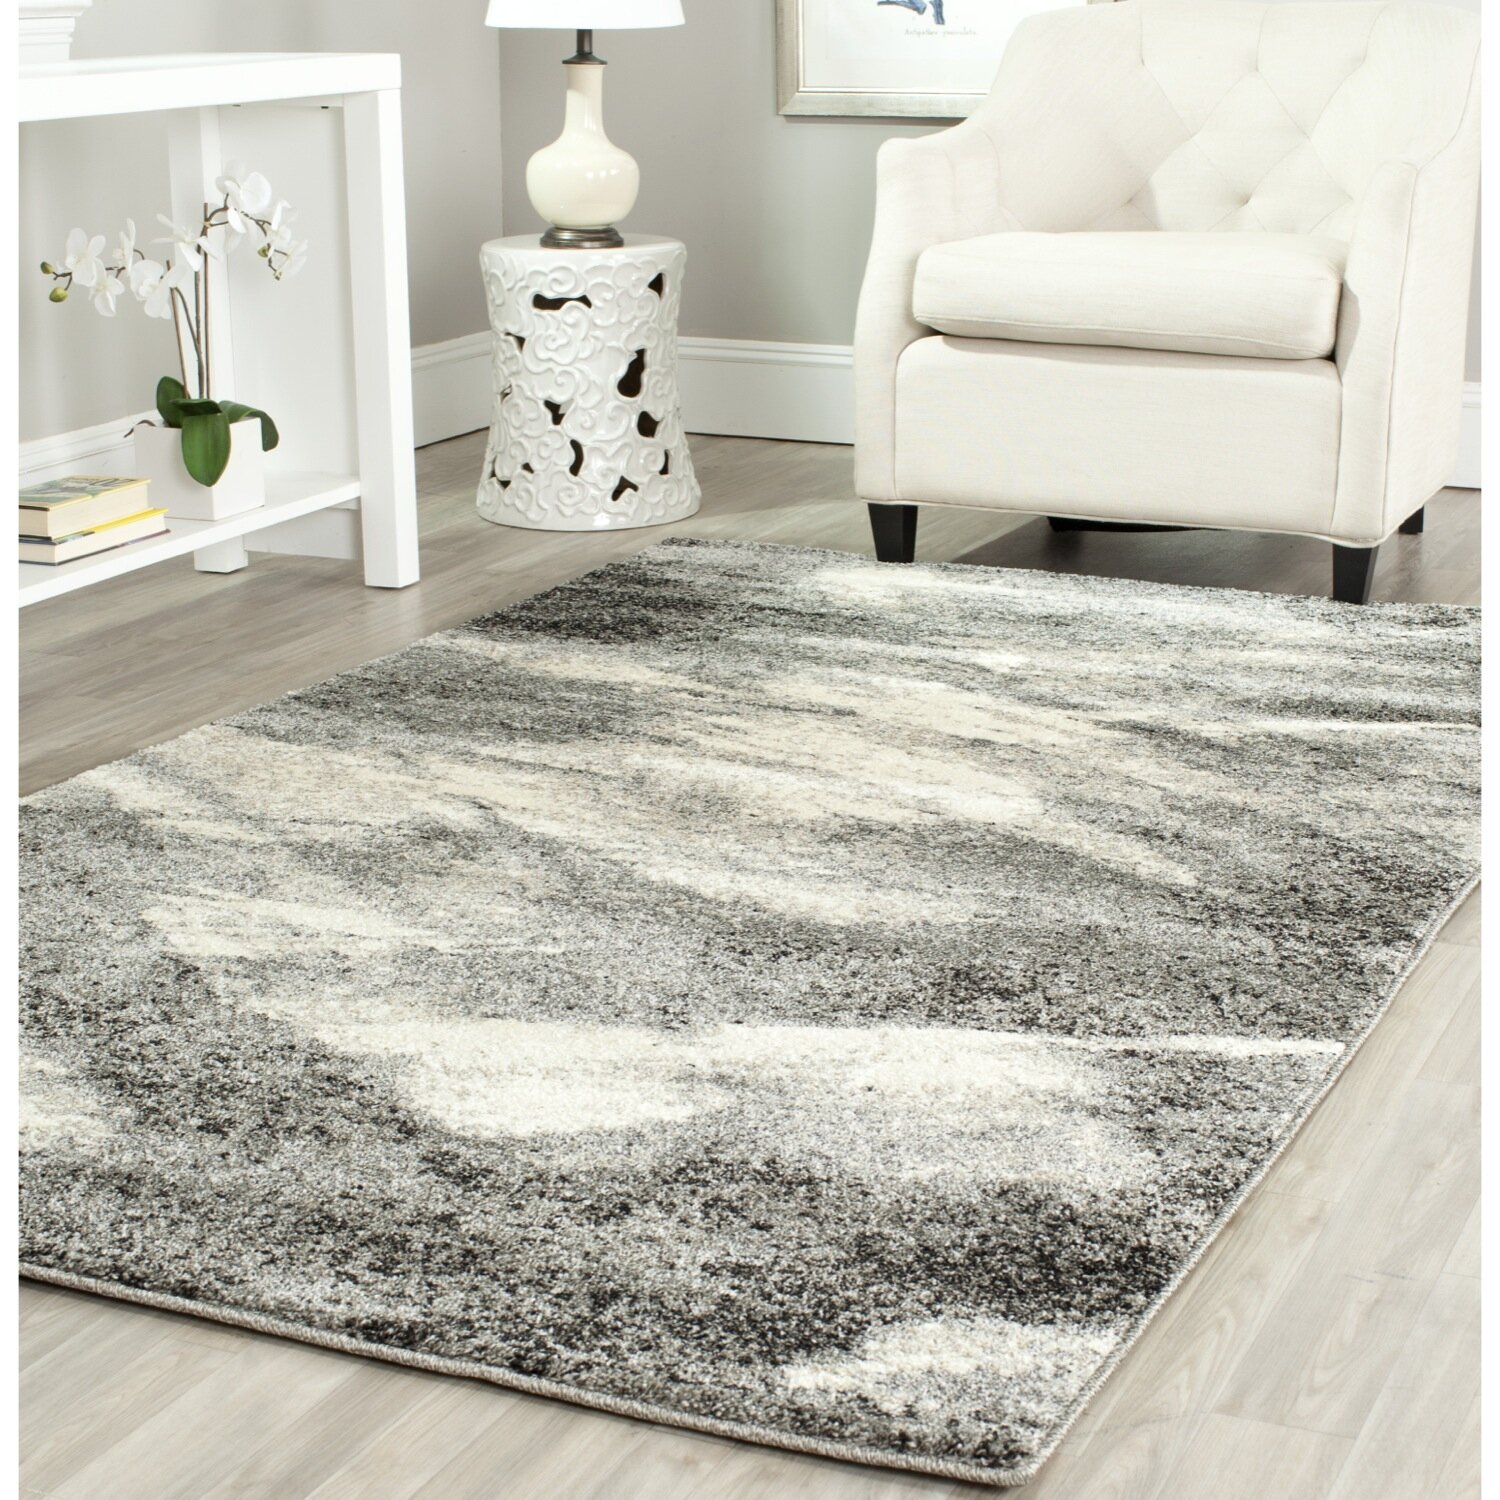 Vulpecula Gray And Ivory Area Rug Amp Reviews Allmodern